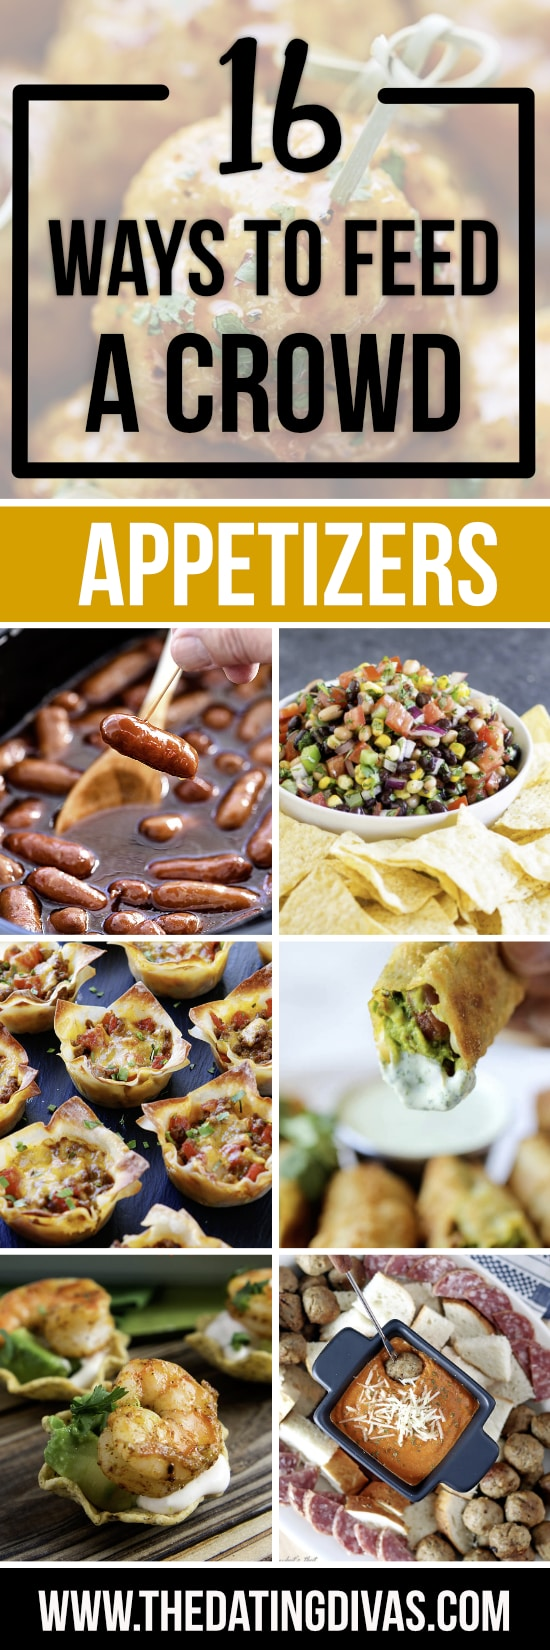 Appetizers for a Crowd